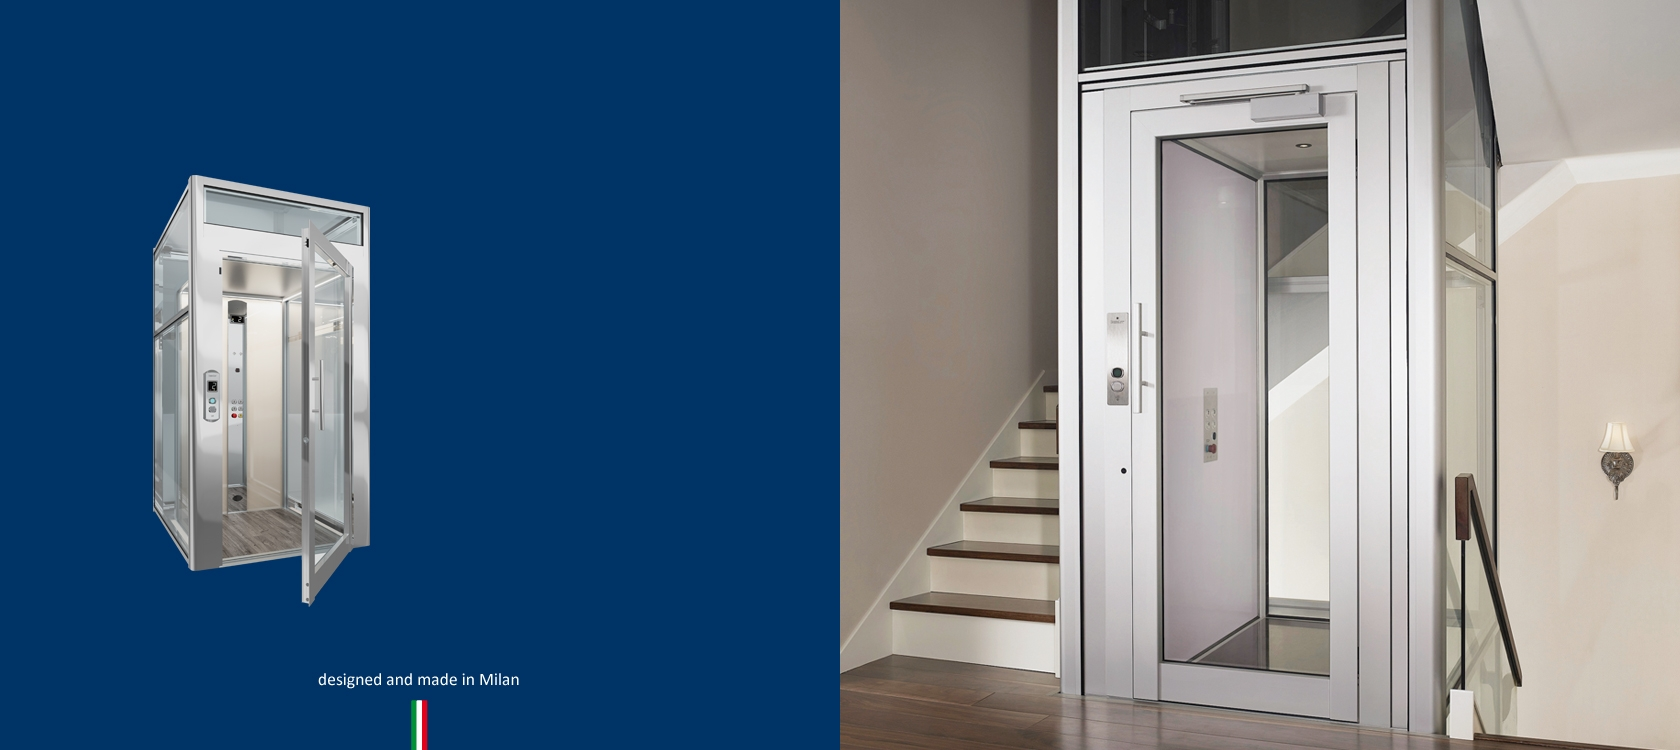 Home lifts, domestic lifts and residential lifts | DomusLift